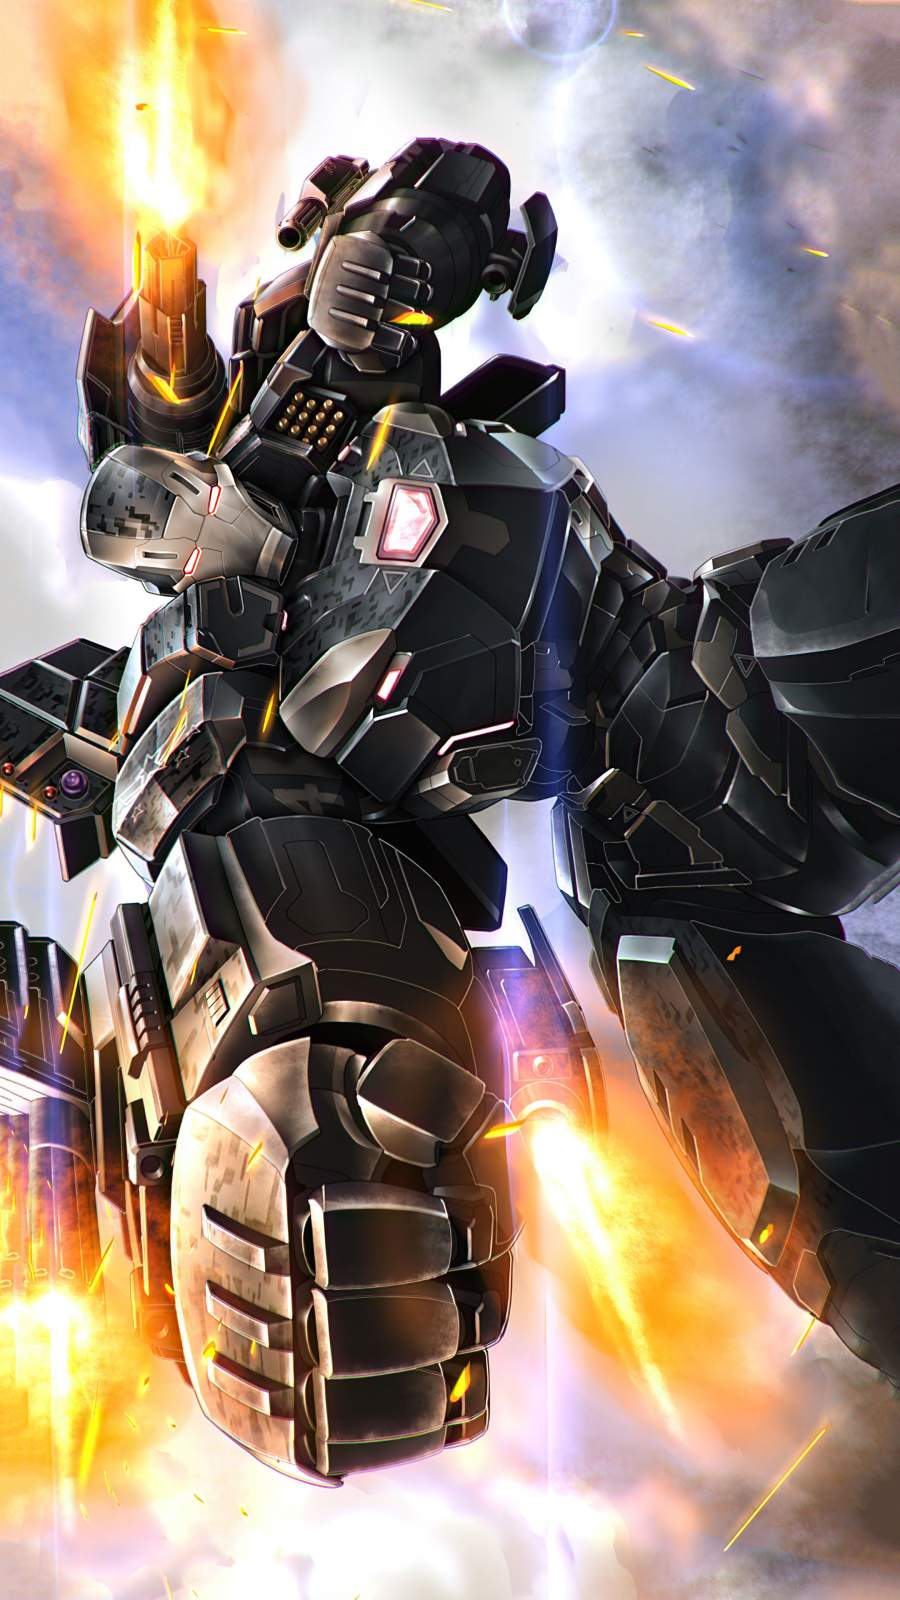 War Machine 2021 Armor iPhone Wallpaper